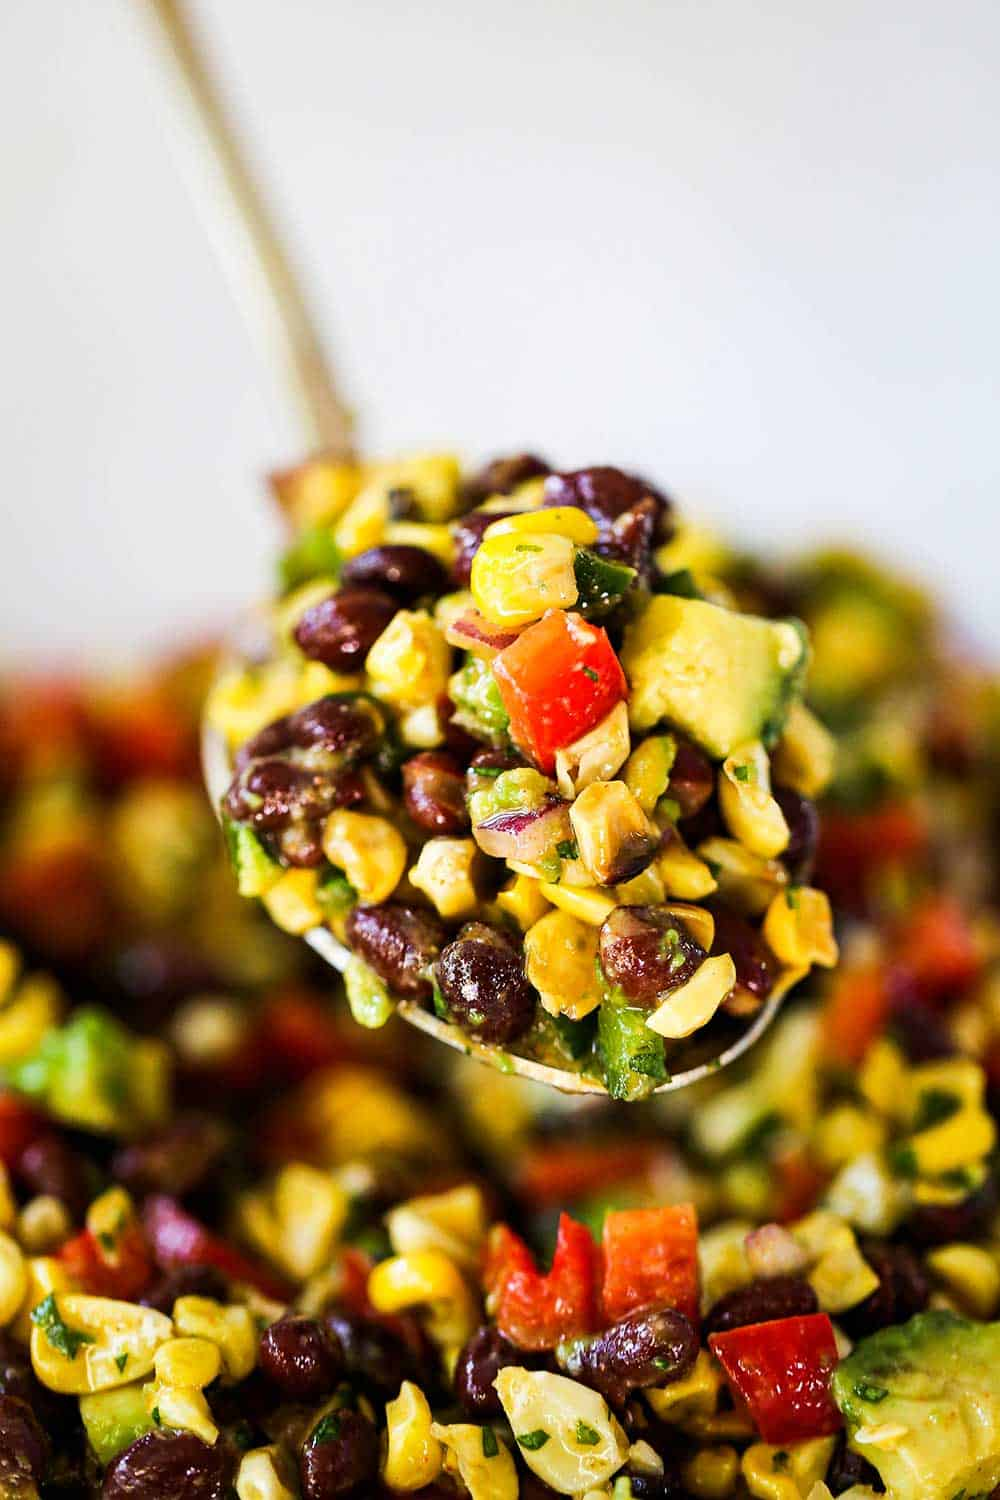 A large gold serving spoon holding up a big scoop of black bean and corn salad.